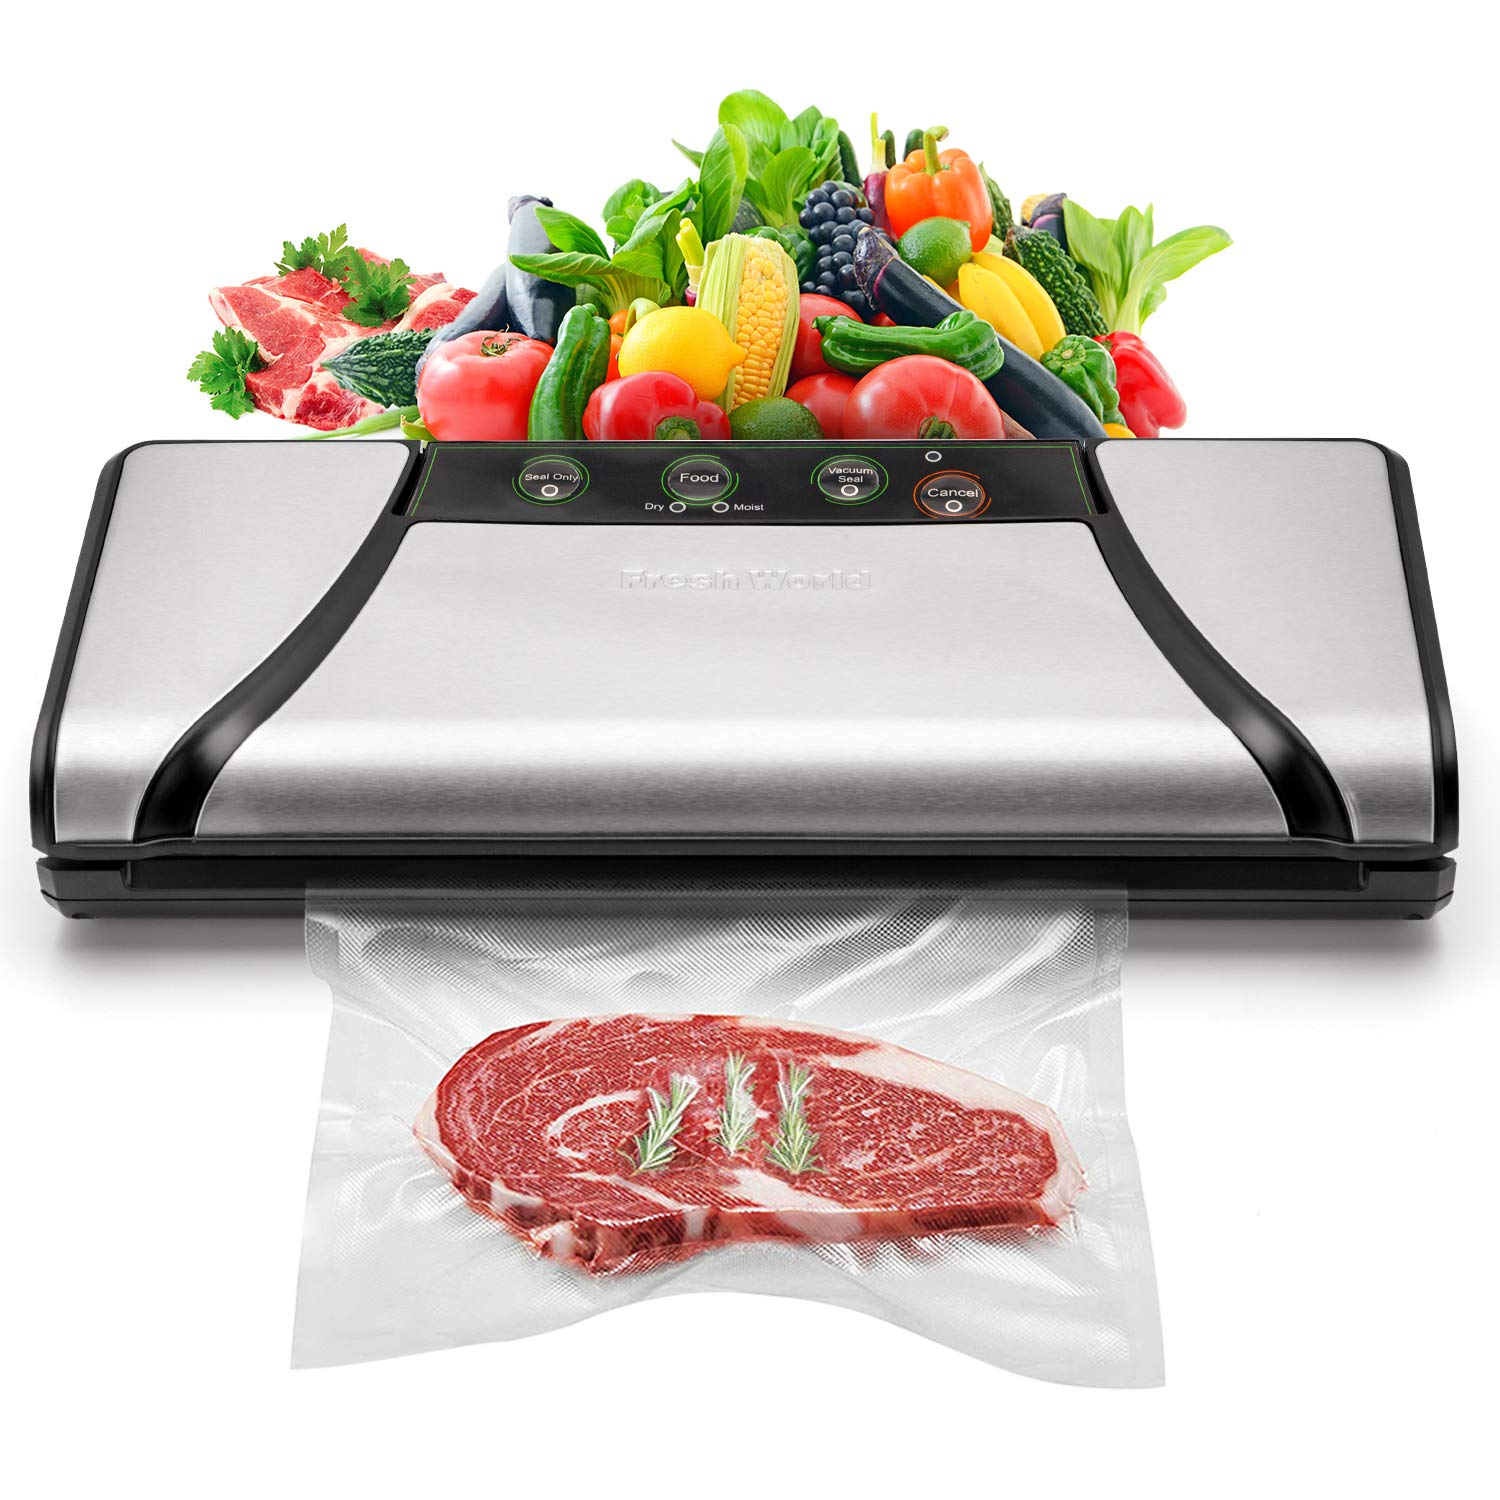 Vacuum Sealer, 4-in-1 Automatic Food Saver with Cutter, Stainless Stee Vacuum Packing Machine for Dry Moist Food, TVS-2019